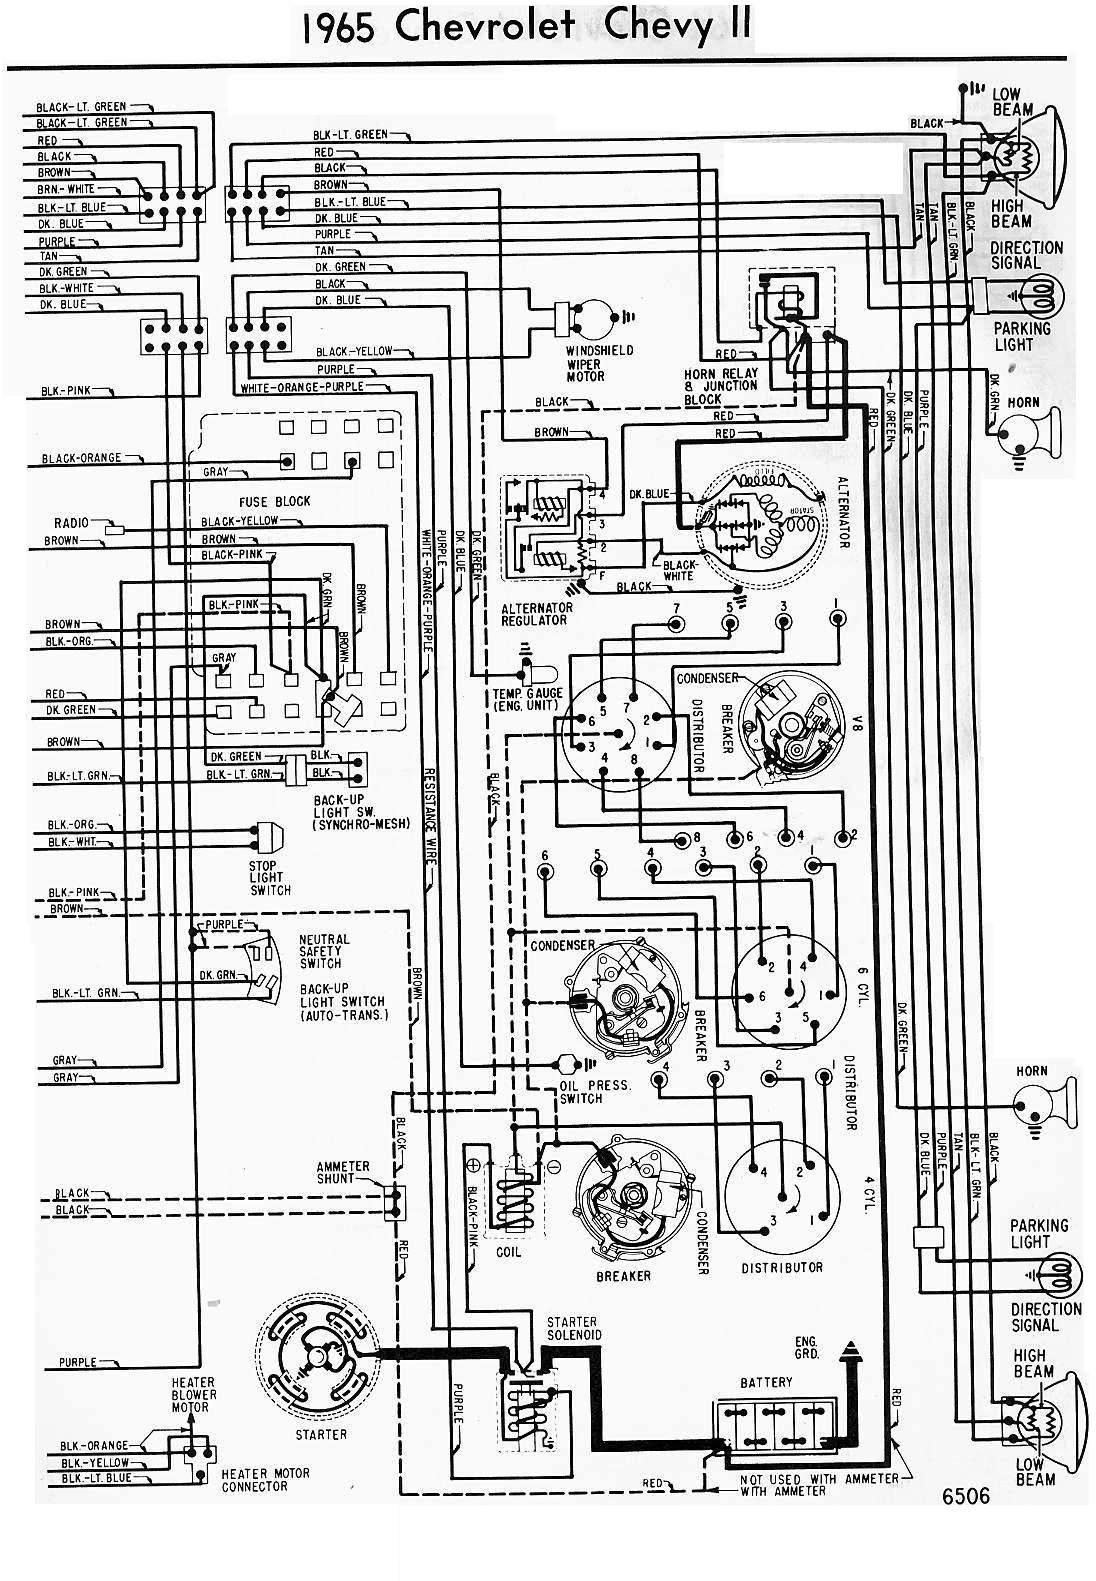 1965 chevy wiring diagram GwtSdvU diagrams 480314 1975 corvette wiring diagram 1975 corvette 75 corvette wiring diagram at bakdesigns.co